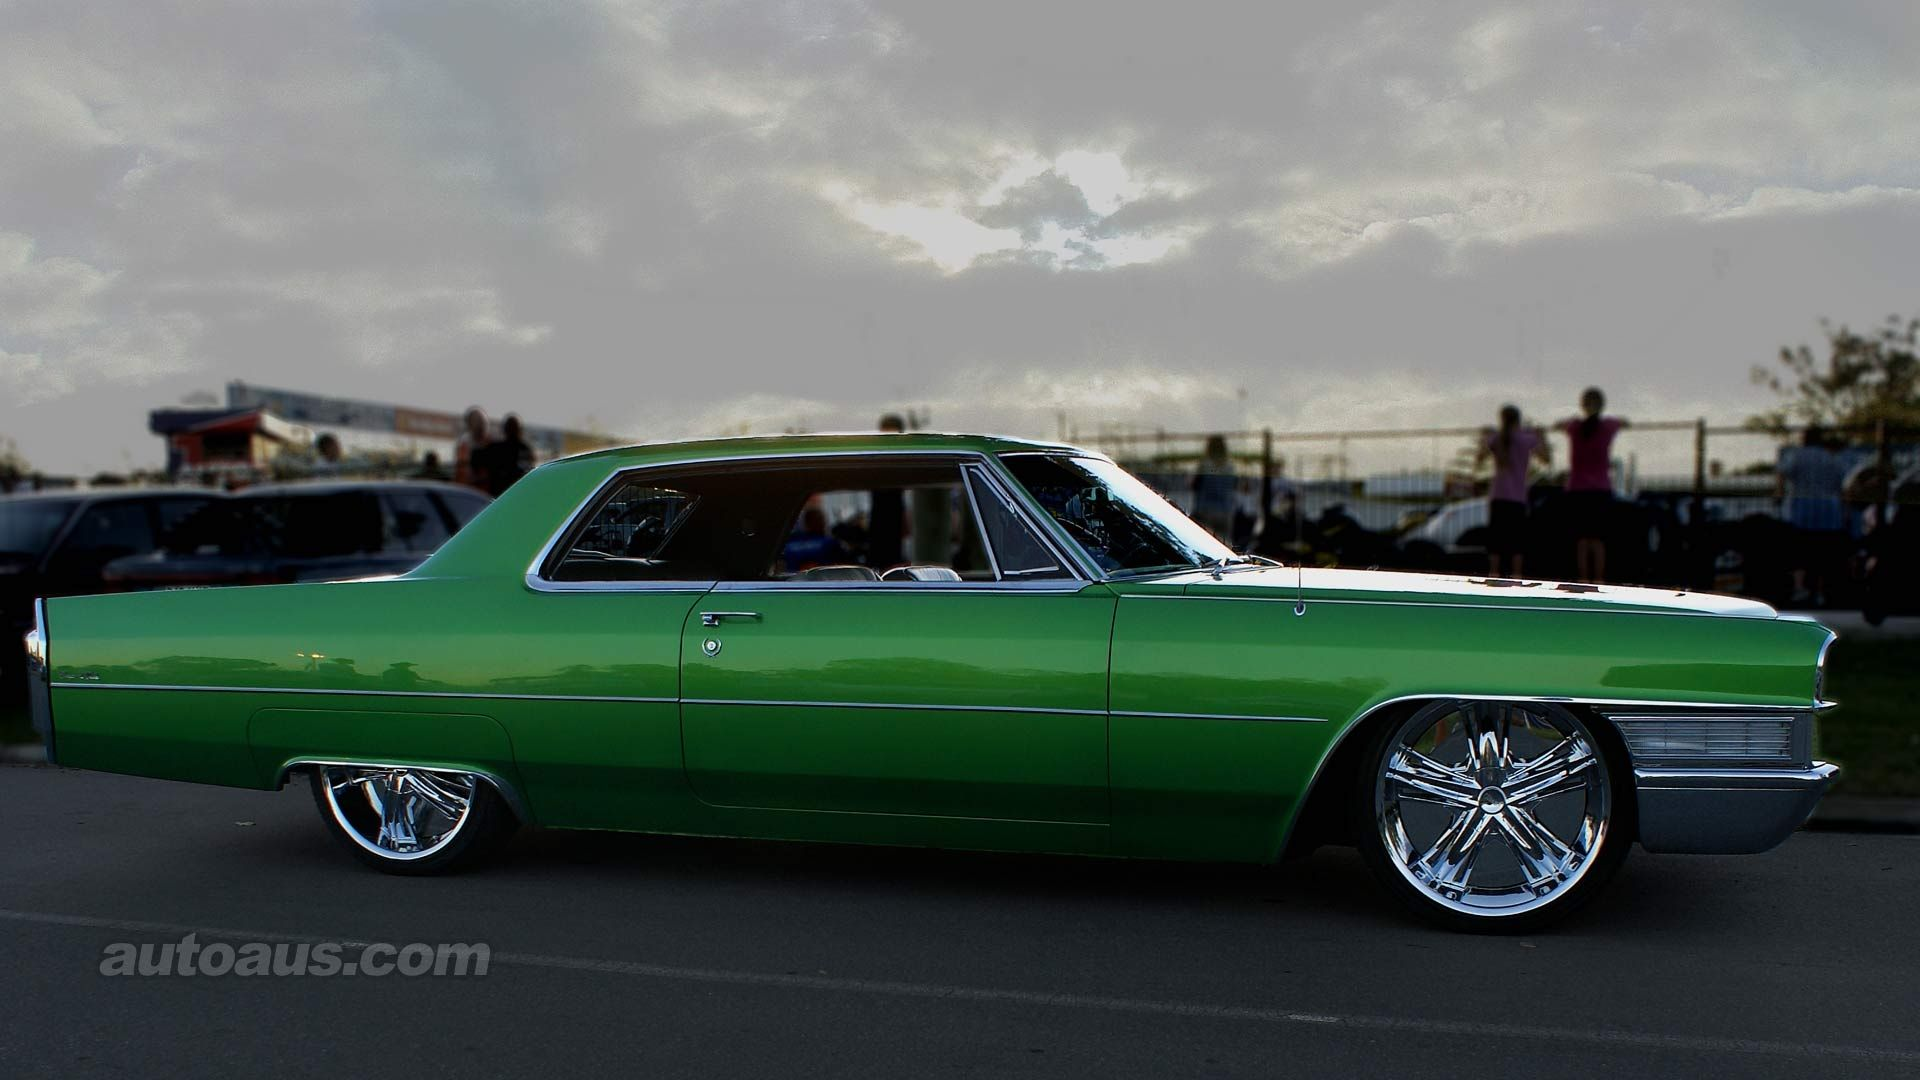 Cool Cars Car Custom Caddy Lexus Wallpaper 1920x1080px Muscle Cars Custom Muscle Cars Old School Muscle Cars